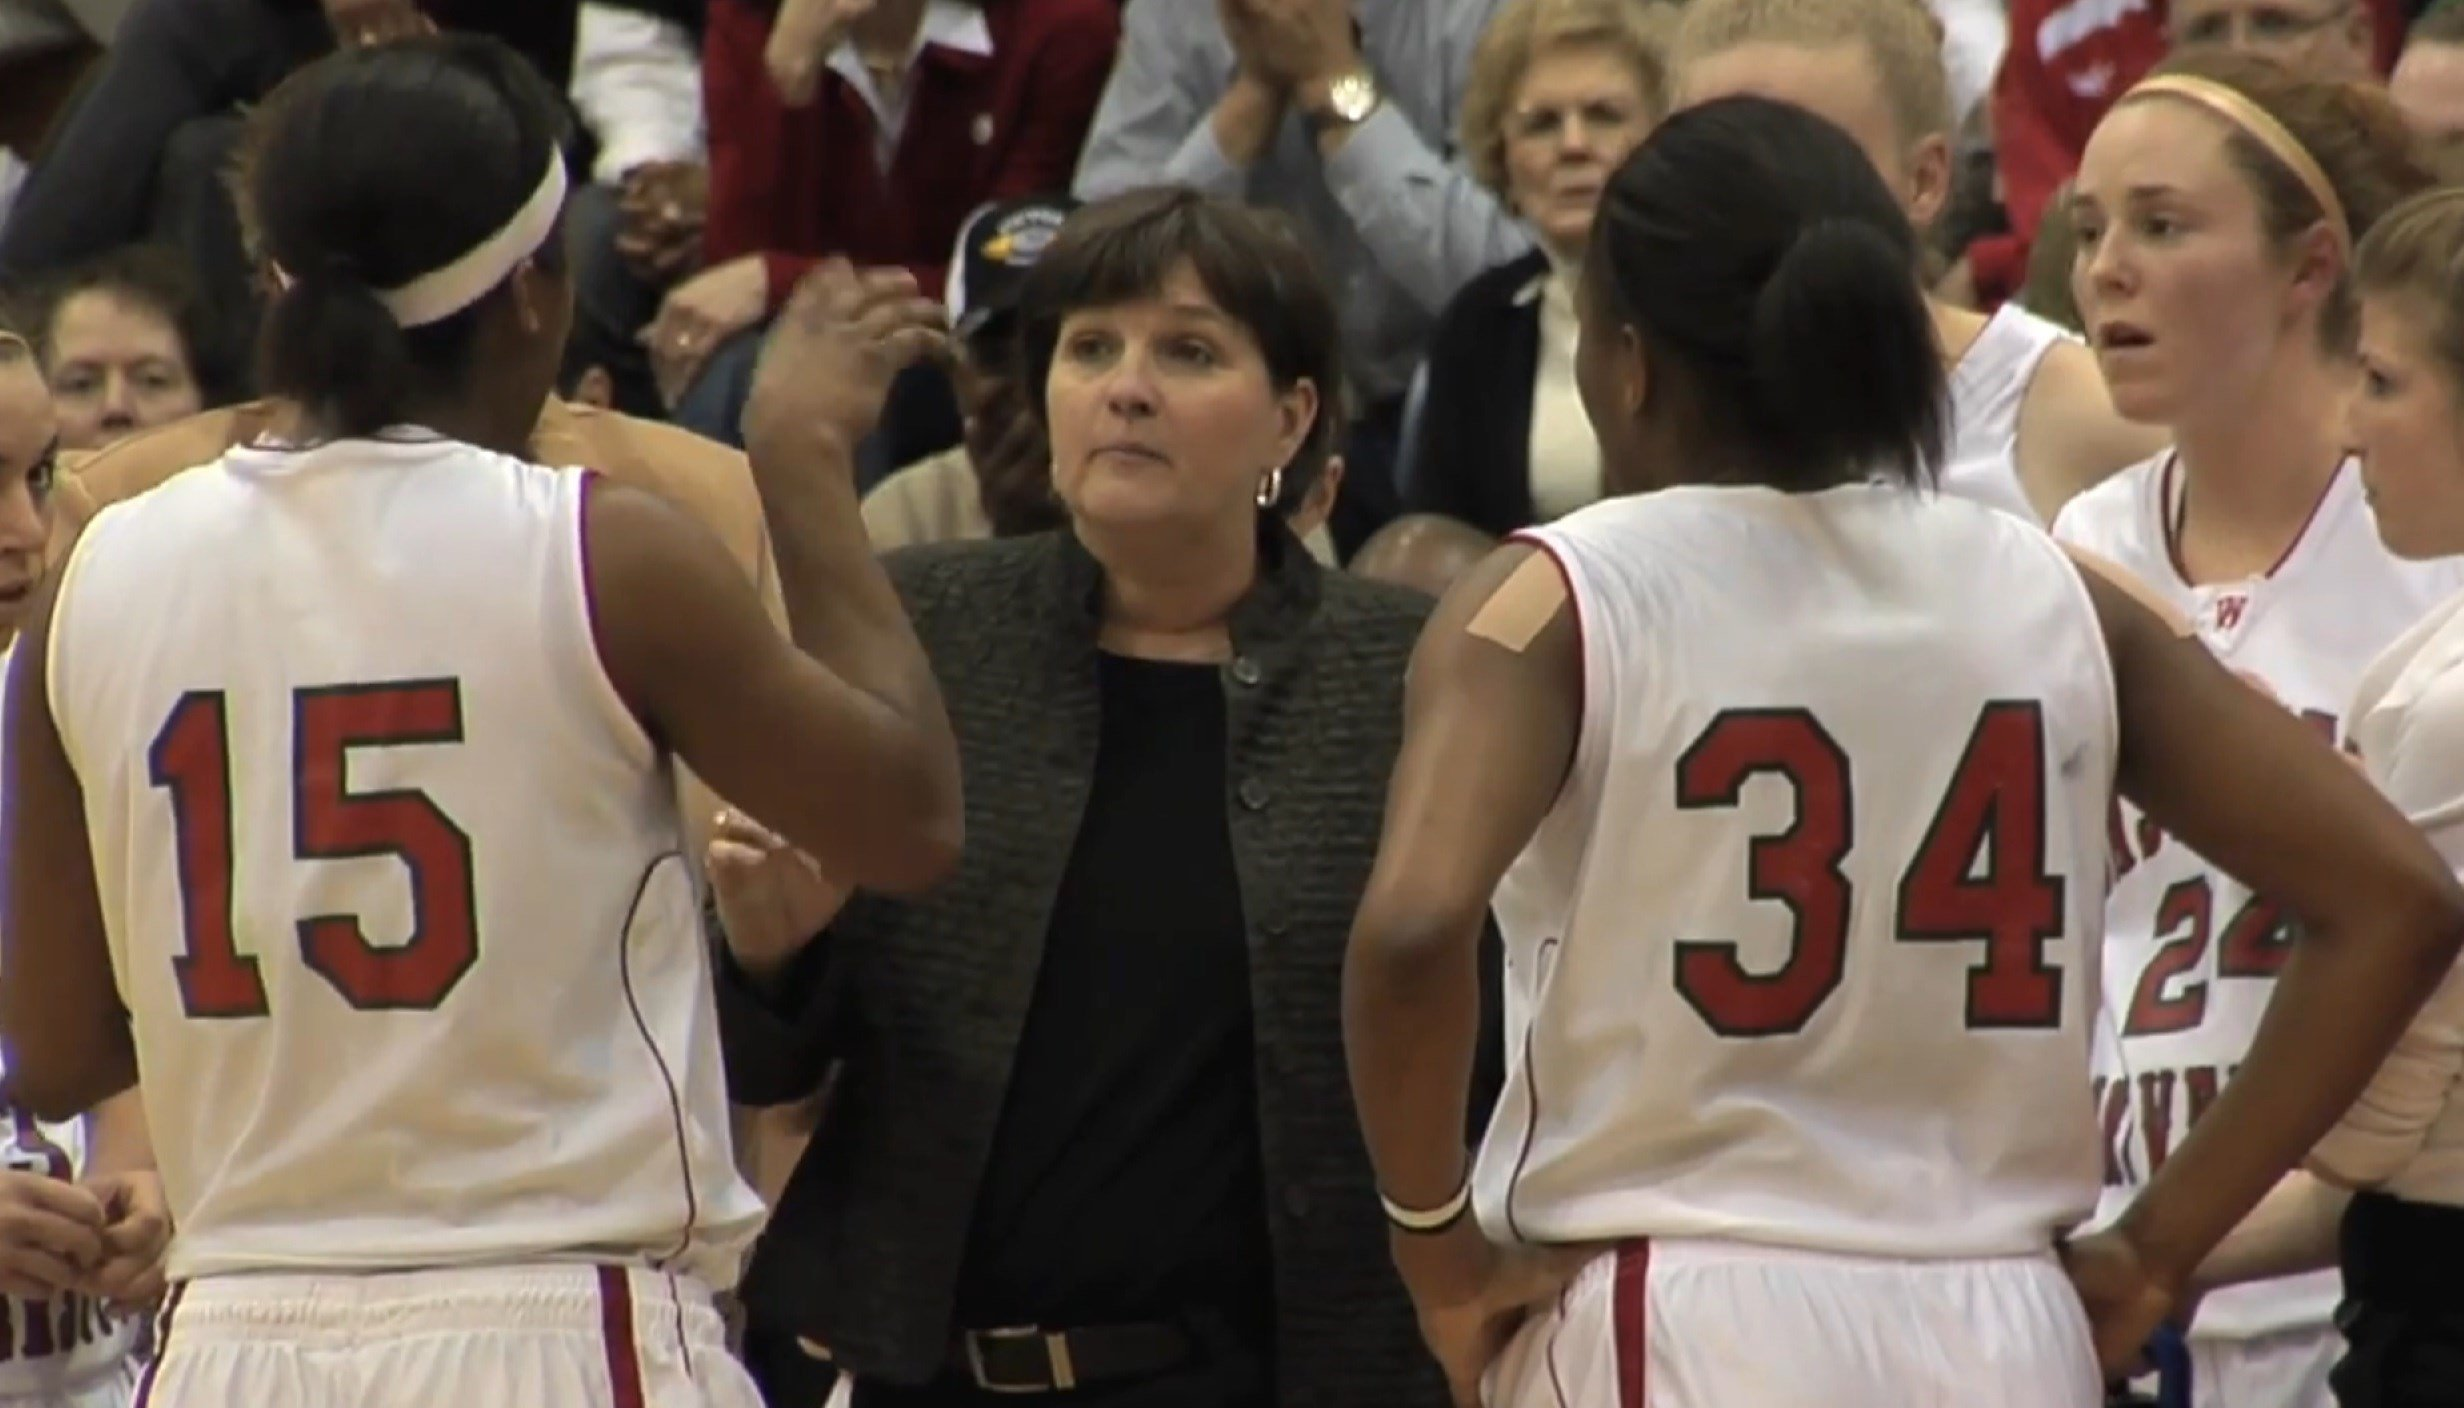 Nancy Fahey hired as head coach of IL women's basketball